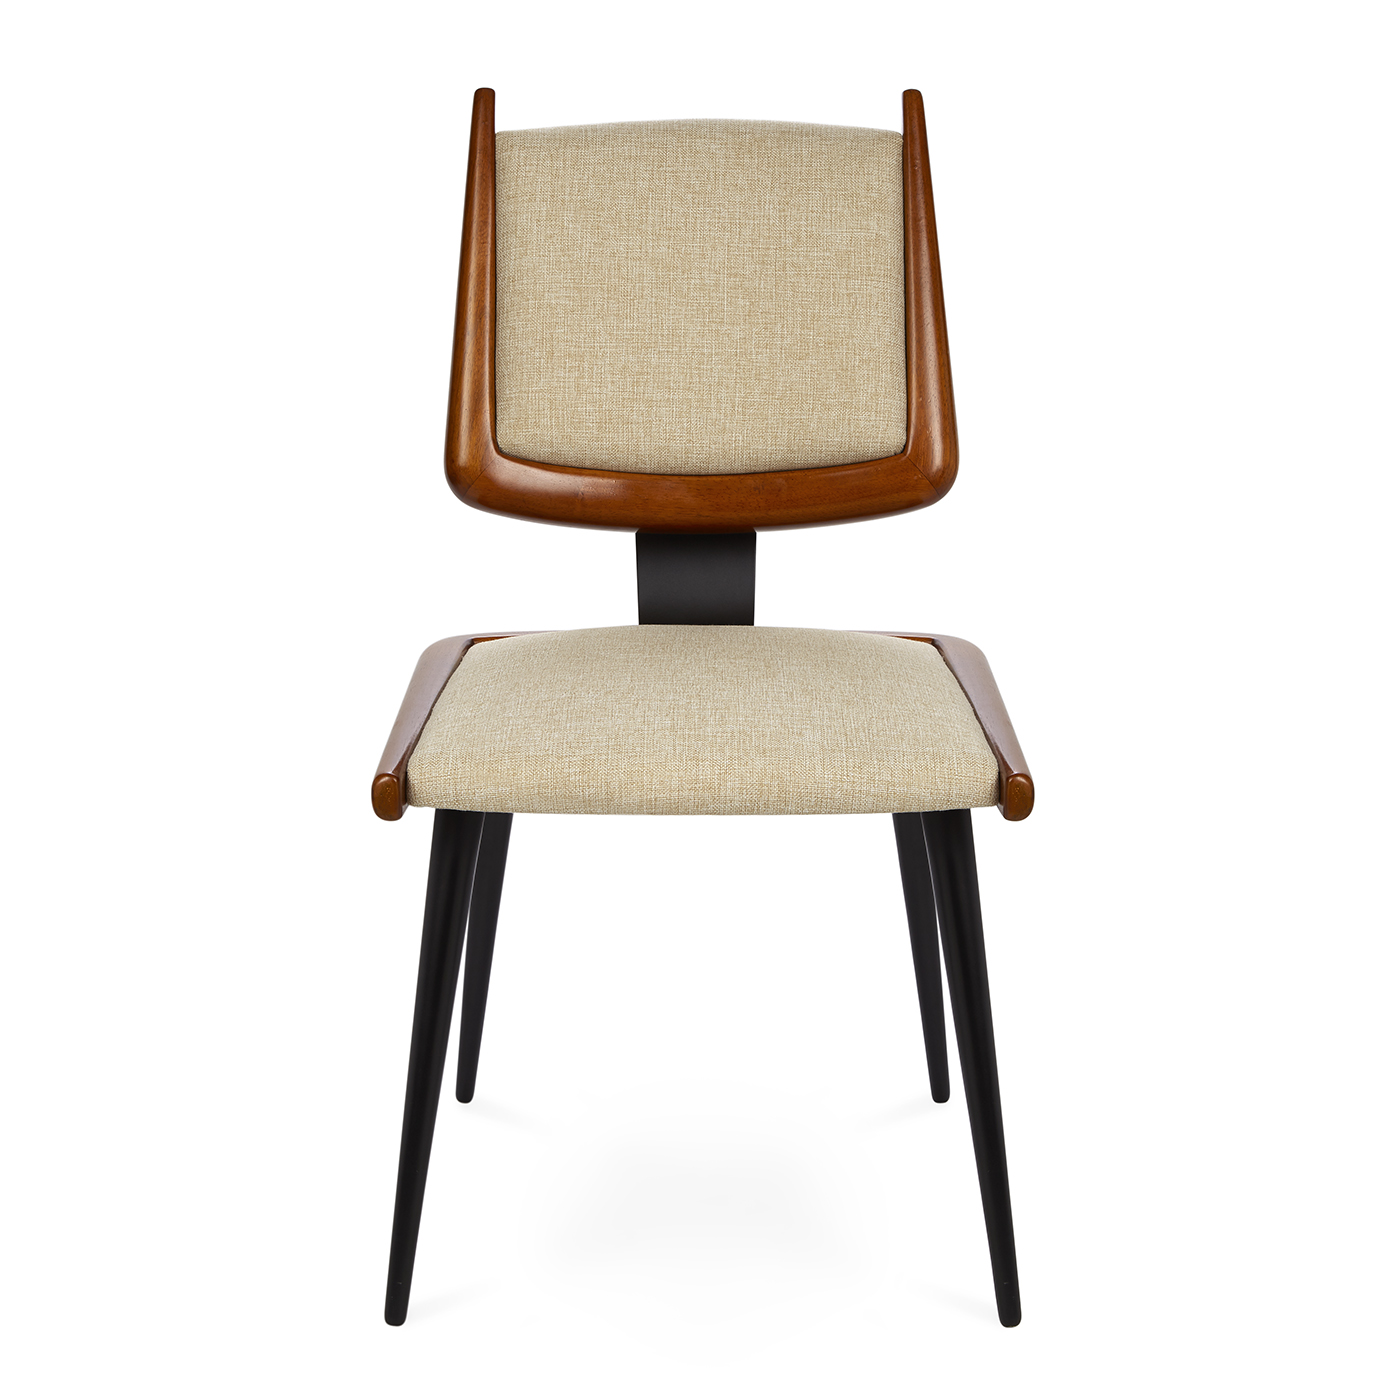 Iconic Chairs Selection for your Dining Room iconic chairs selection for your dining room 10 Iconic Chairs Selection for your Dining Room Iconic Chairs Selection for your Dining Room 06